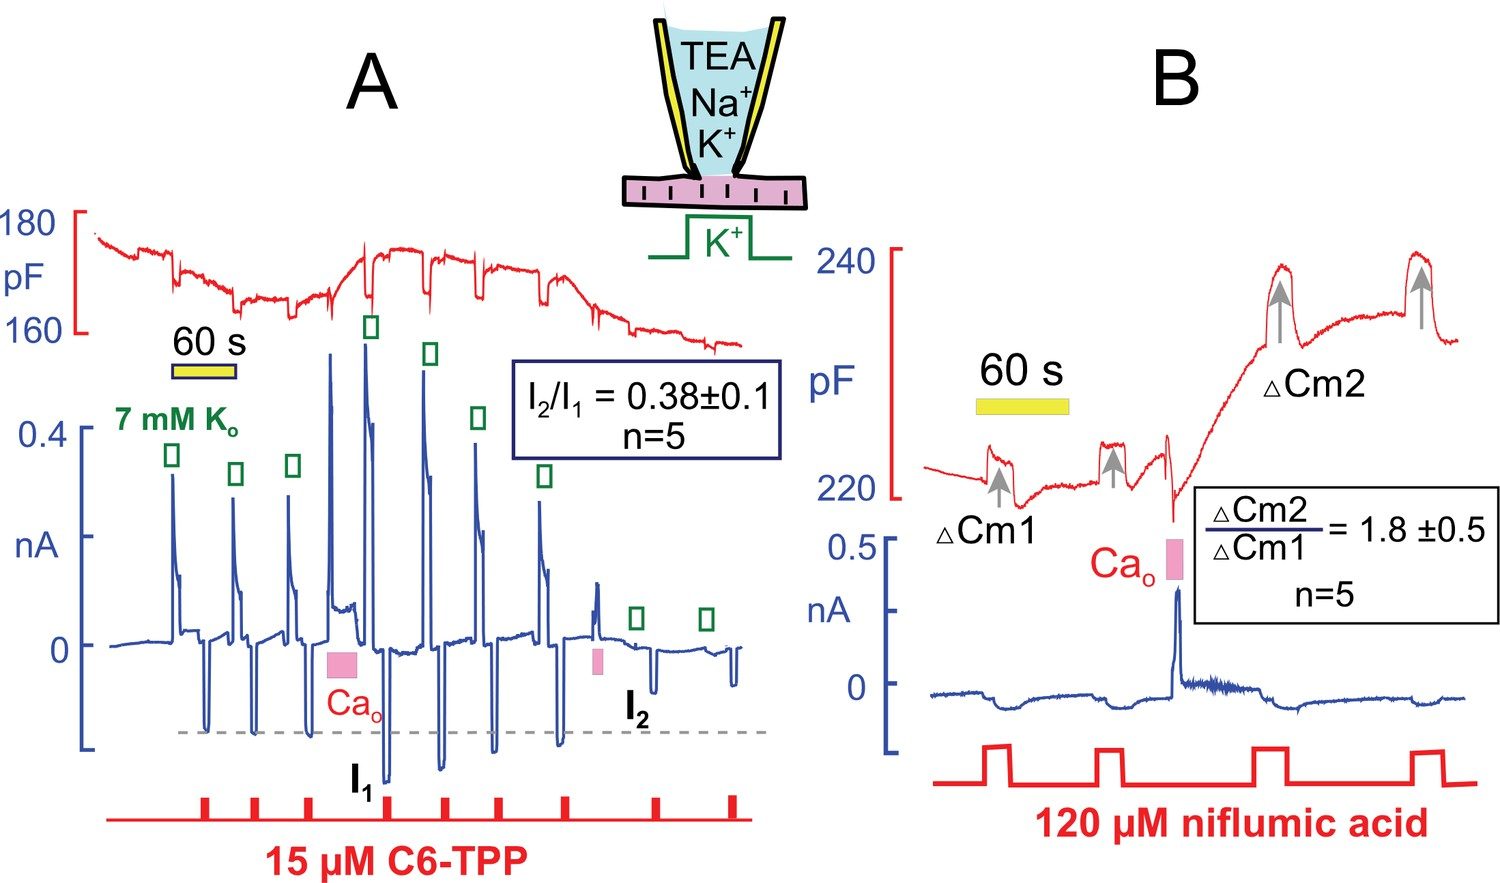 Profound regulation of nak pump activity by transient elevations interactions of hydrophobic cations and anions with the sarcolemma track the stimulation and inhibition of pump currents by ca elevations nvjuhfo Image collections